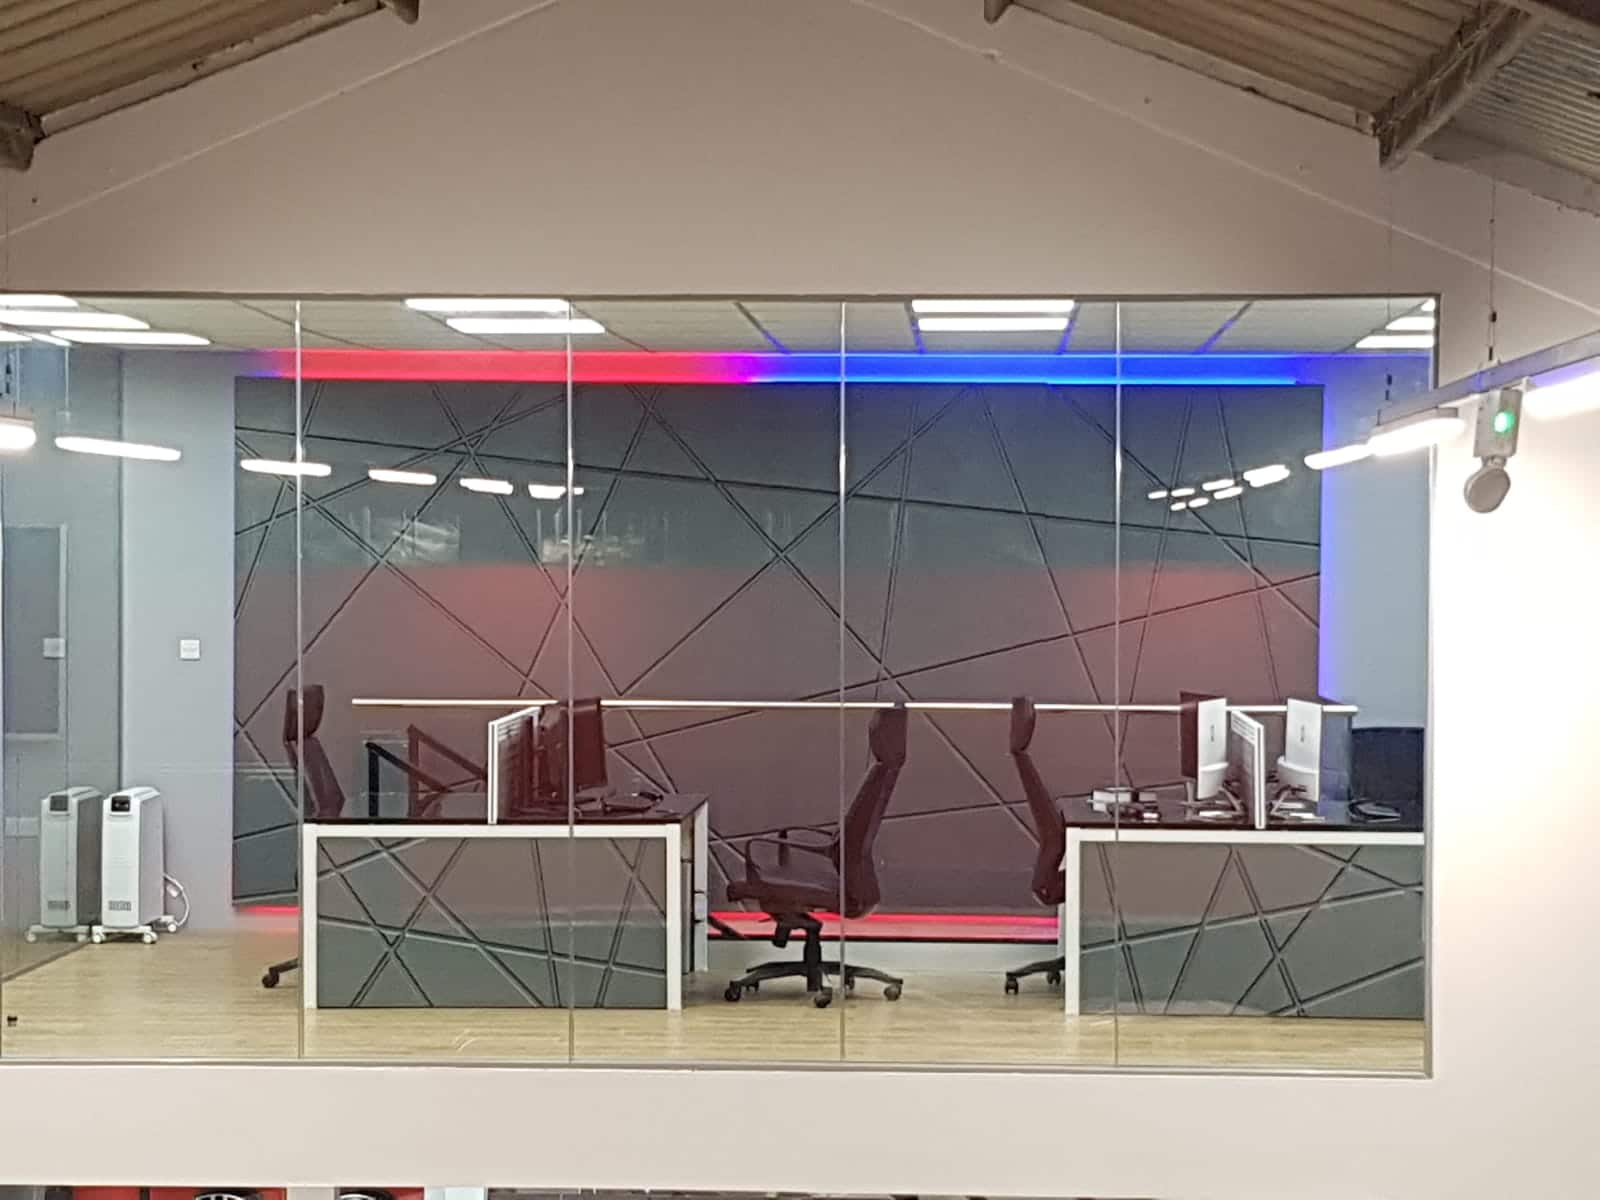 cjl leisure vehicles design studio with all art and LEDs